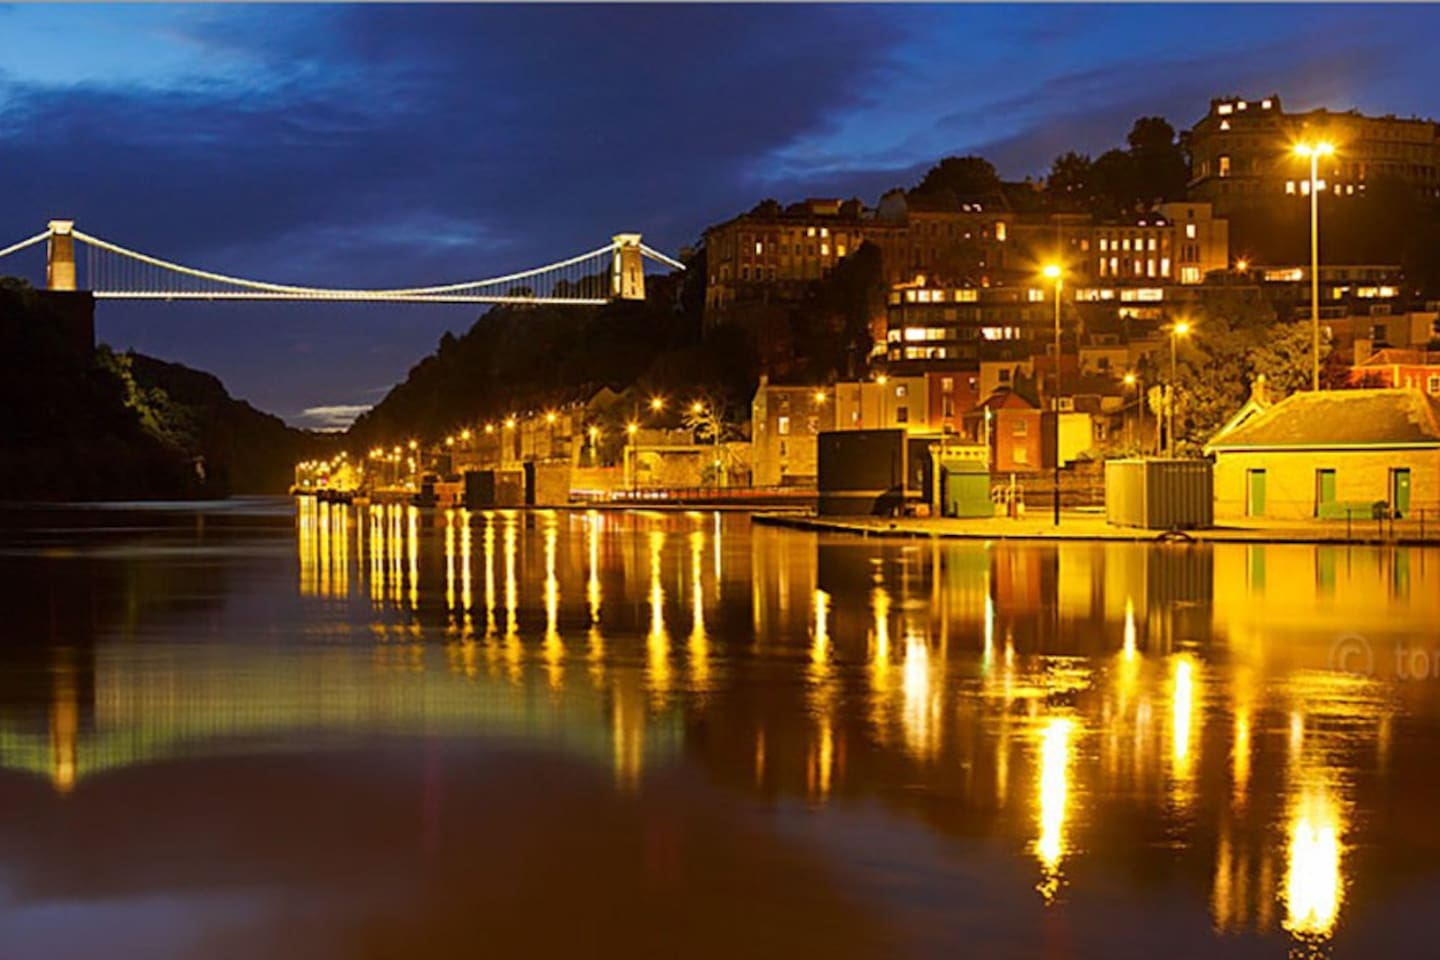 Hotwells on the River at Night